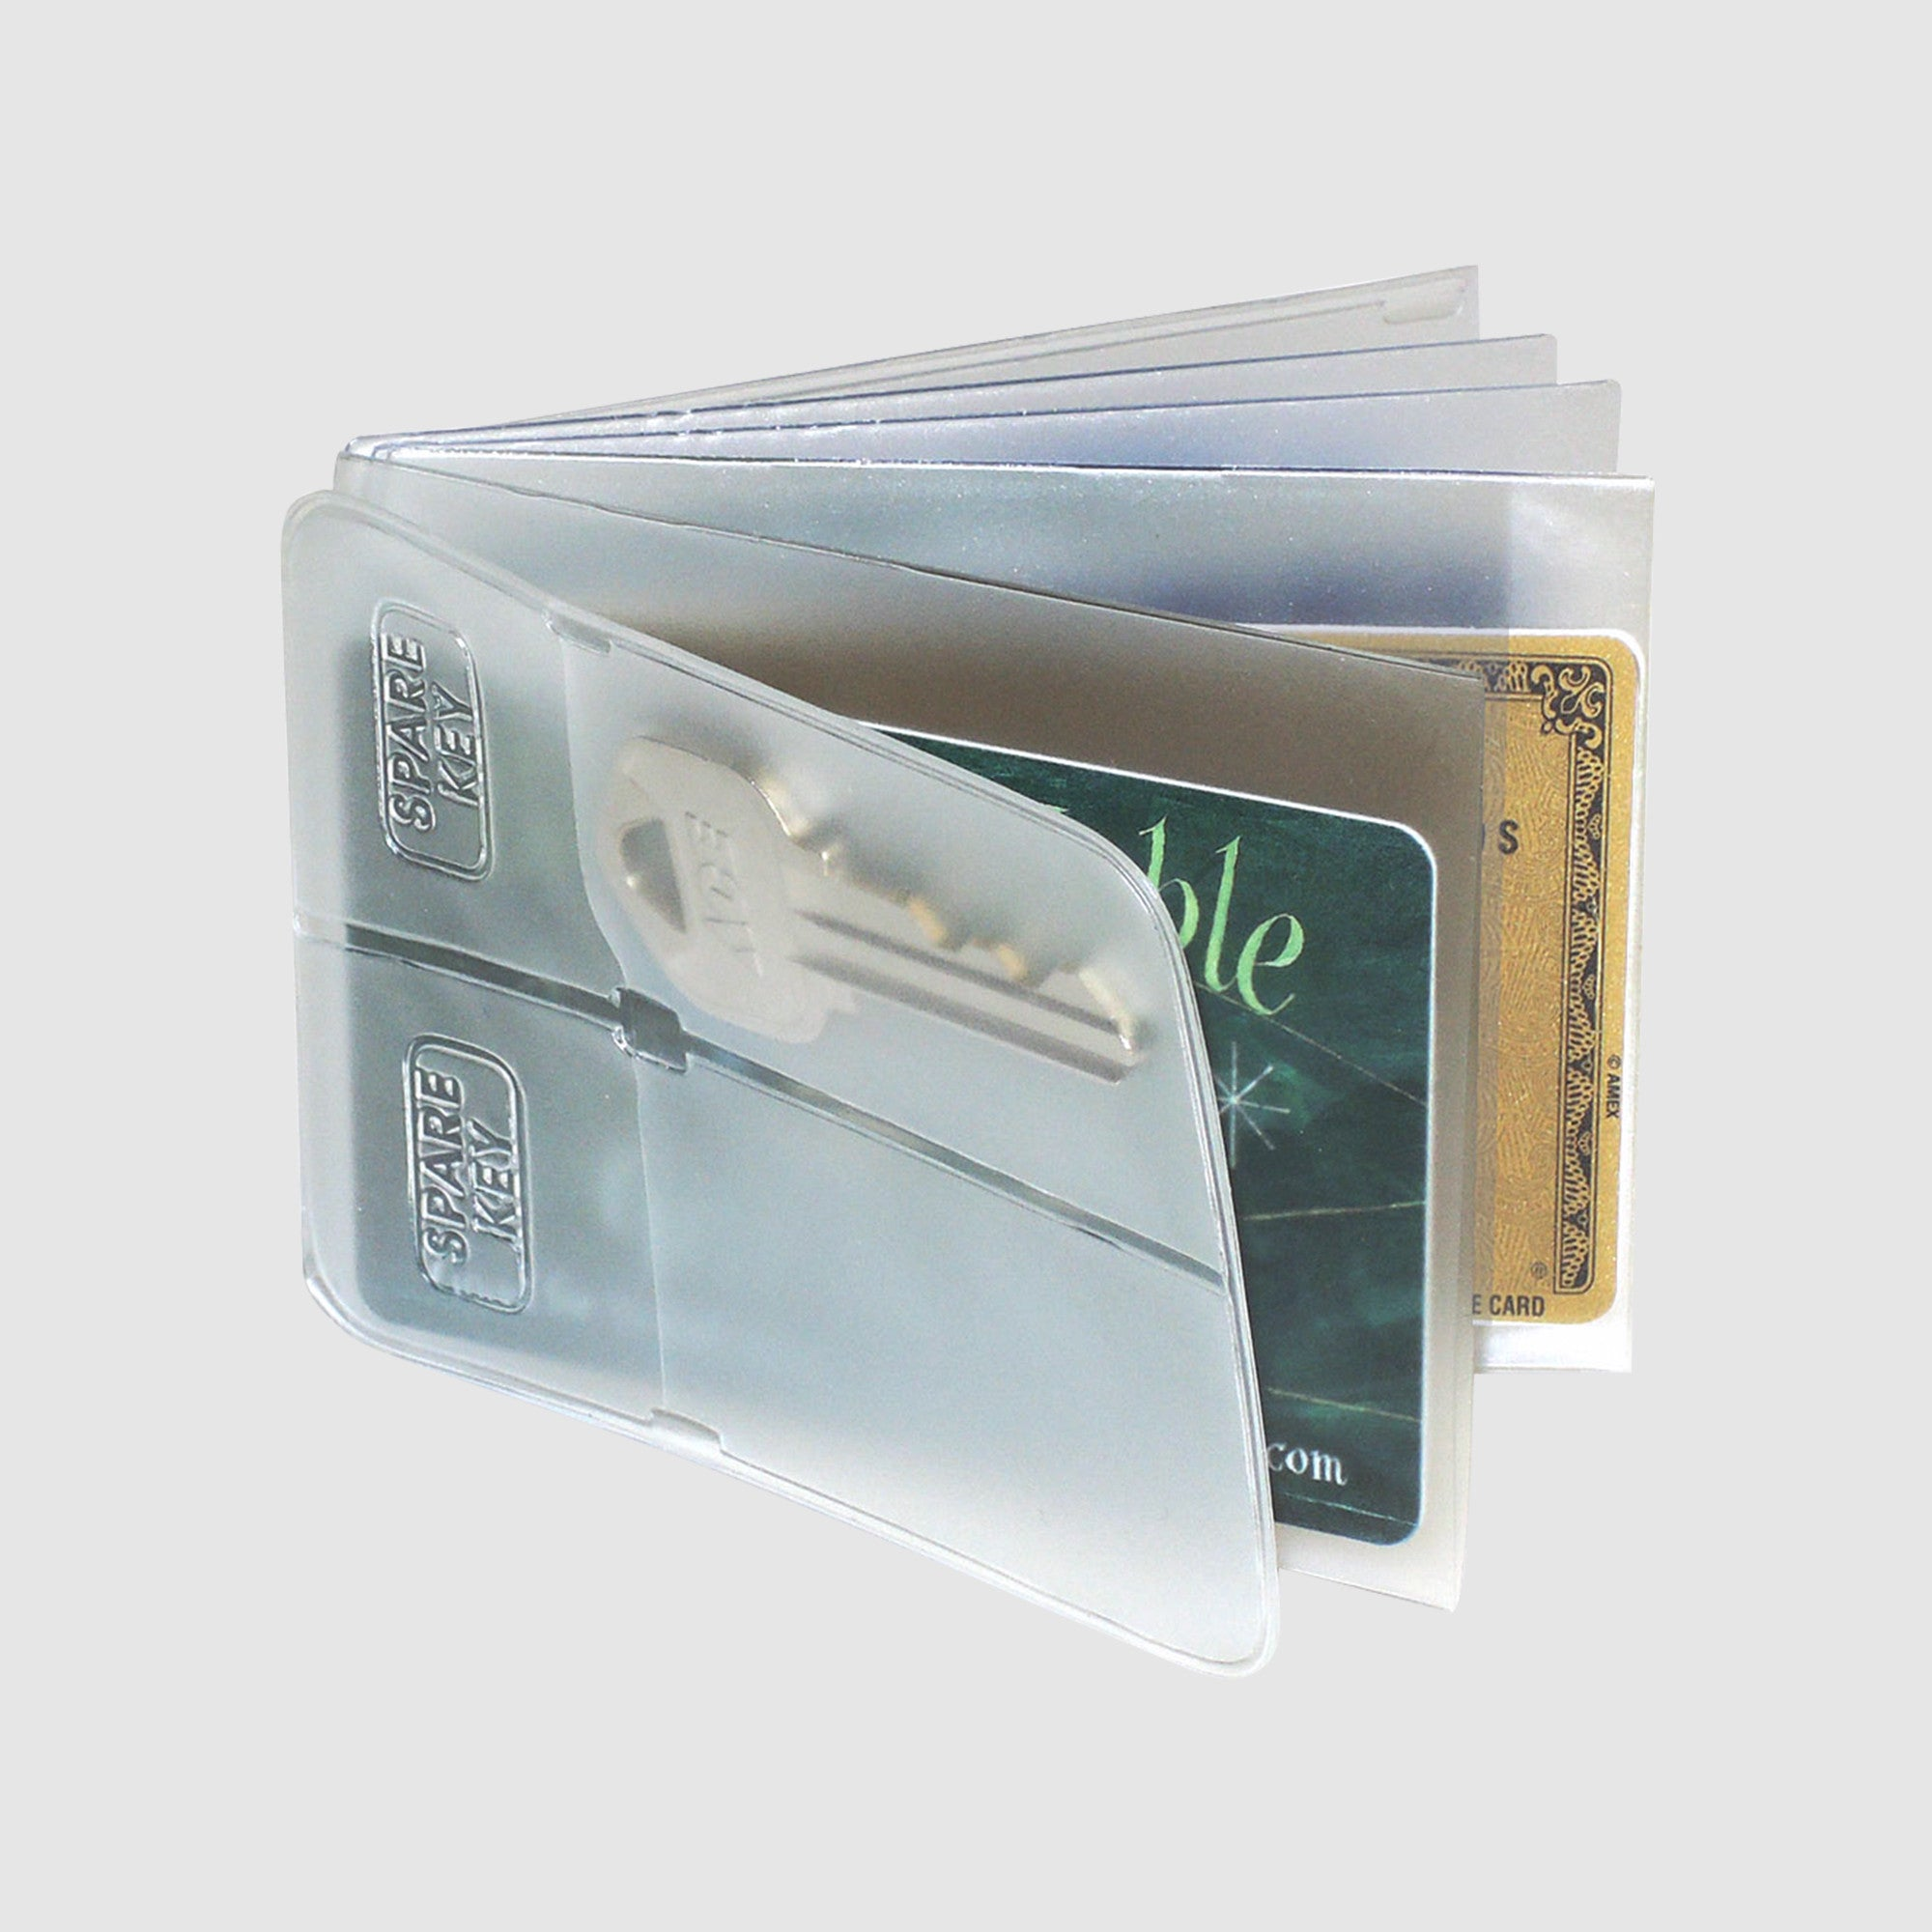 Window Book - Passcase Billfold - Clear